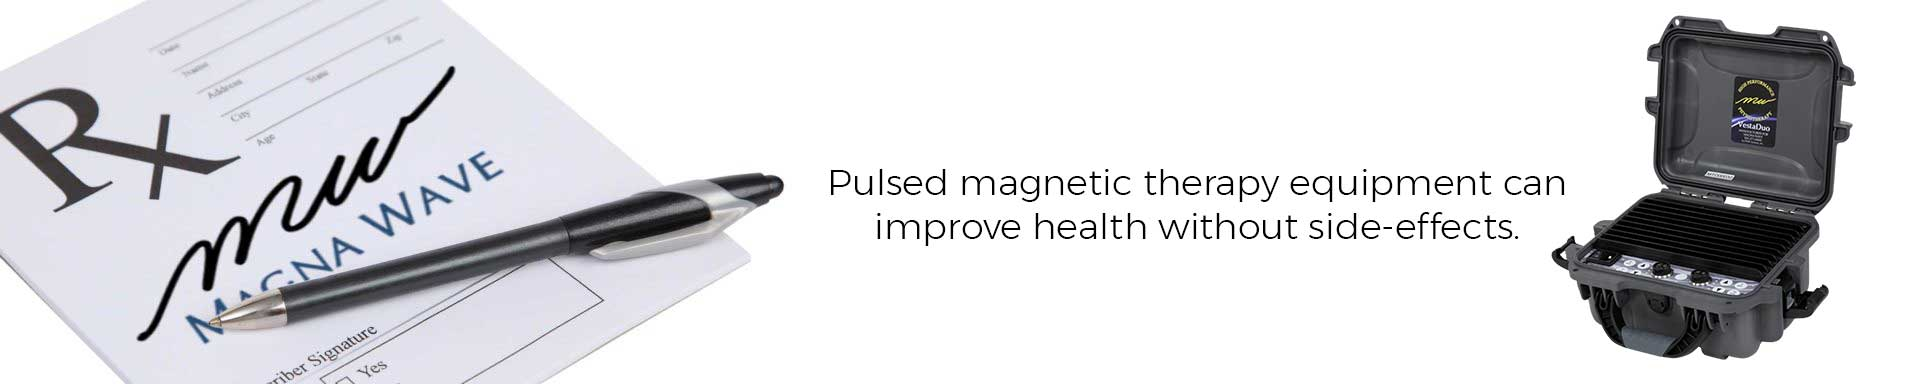 Magna Wave - Pulsed Magnetic Therapy Equipment Without Side Effects